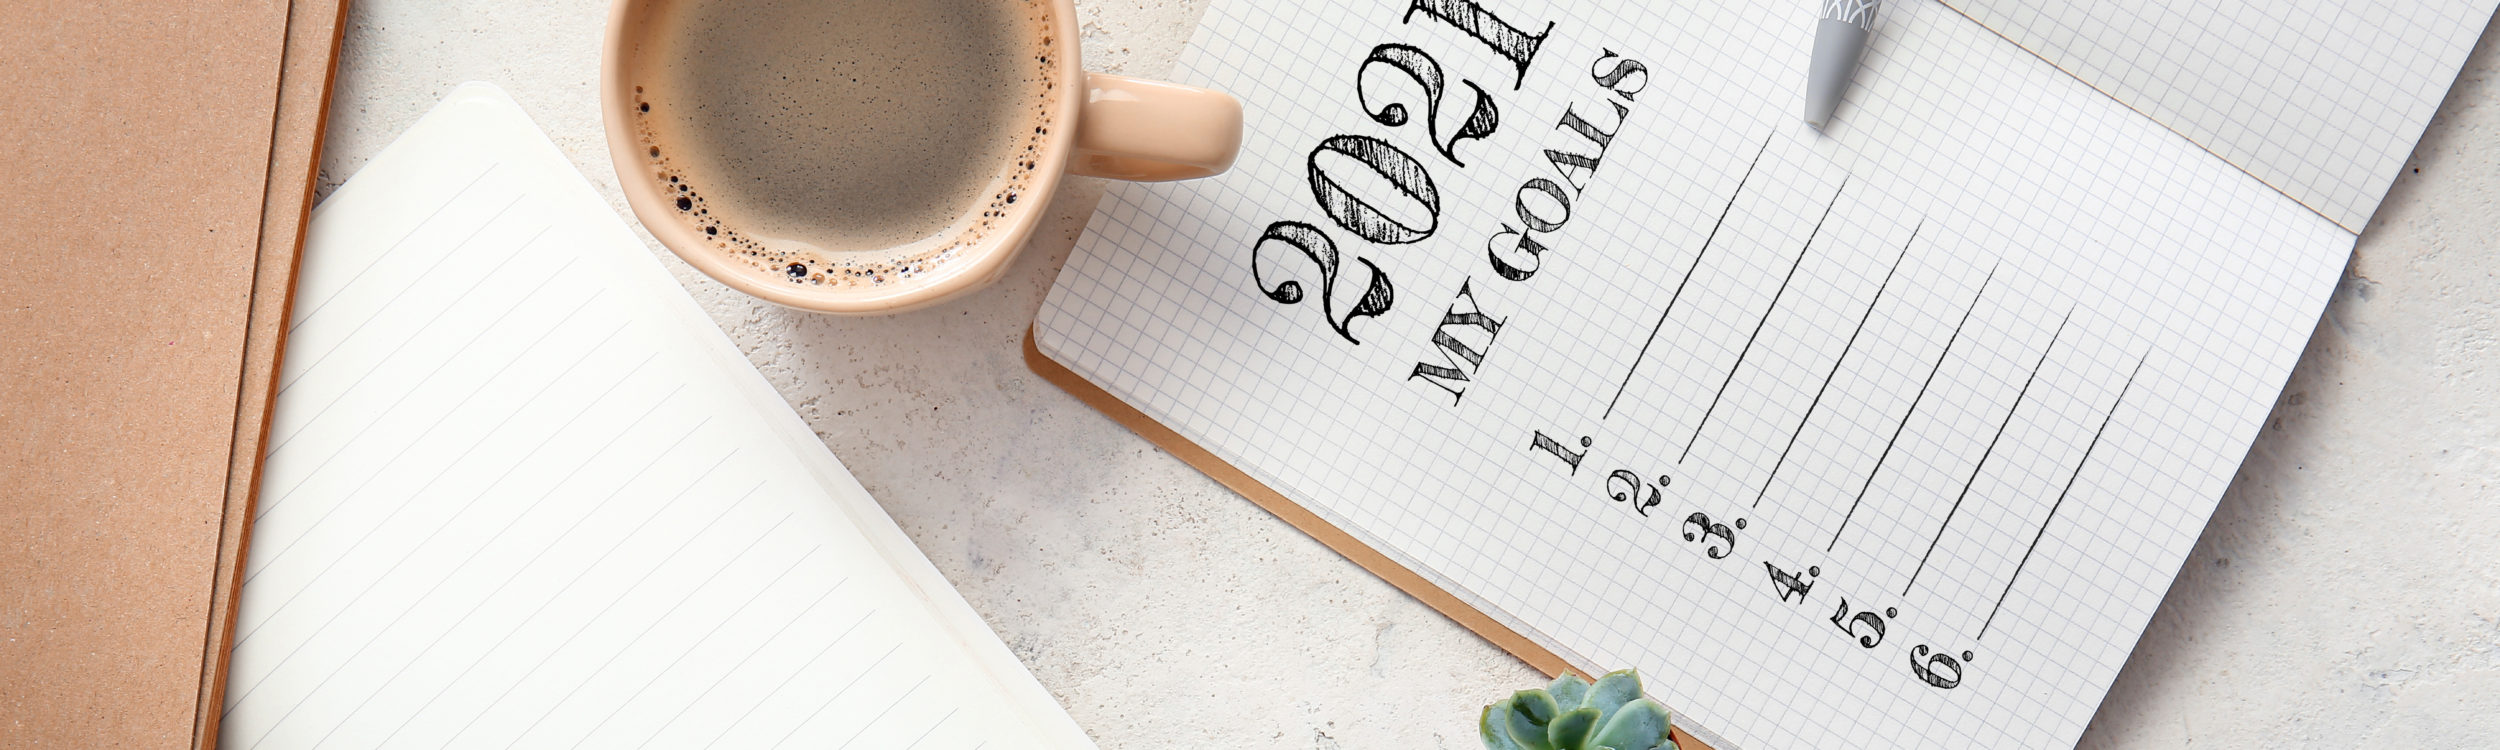 6 Tips for Setting Goals and Goal Management in 2021 featured image